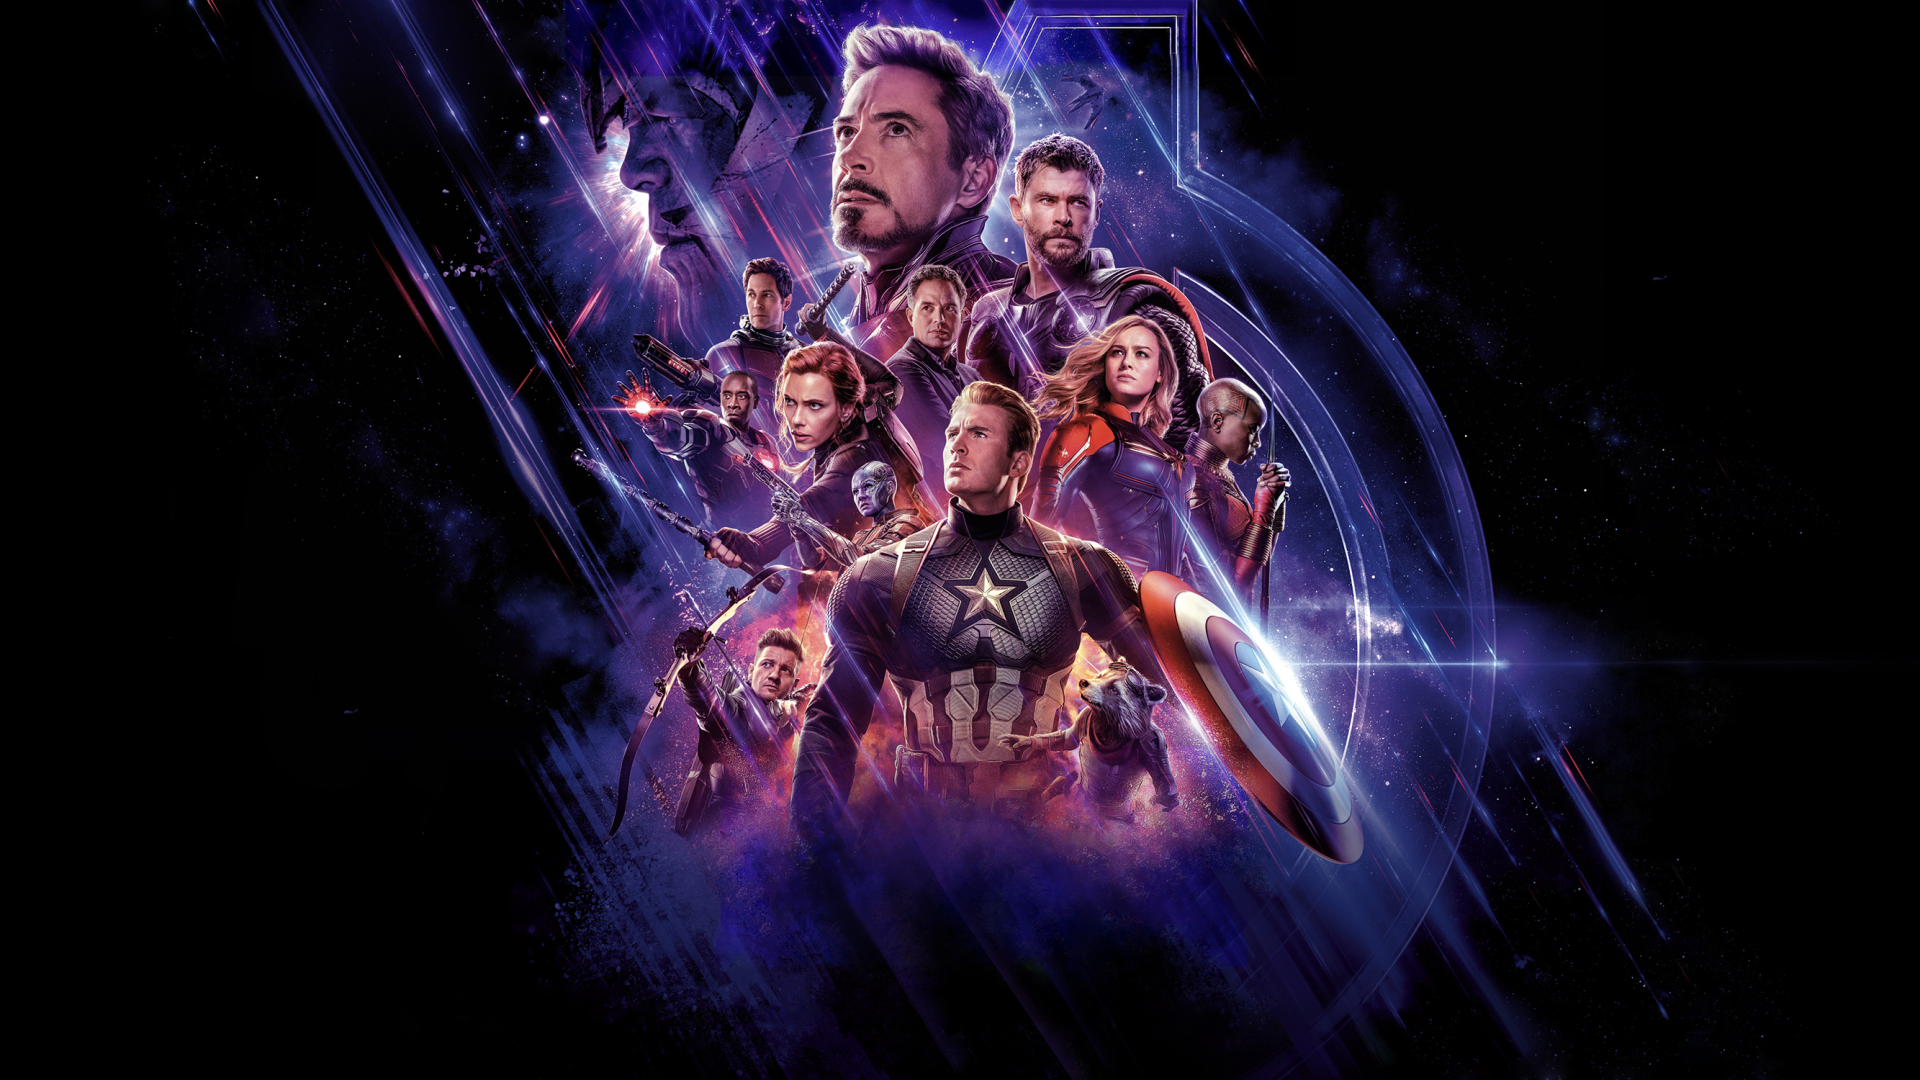 216 Avengers Endgame Hd Wallpapers Background Images Wallpaper Abyss